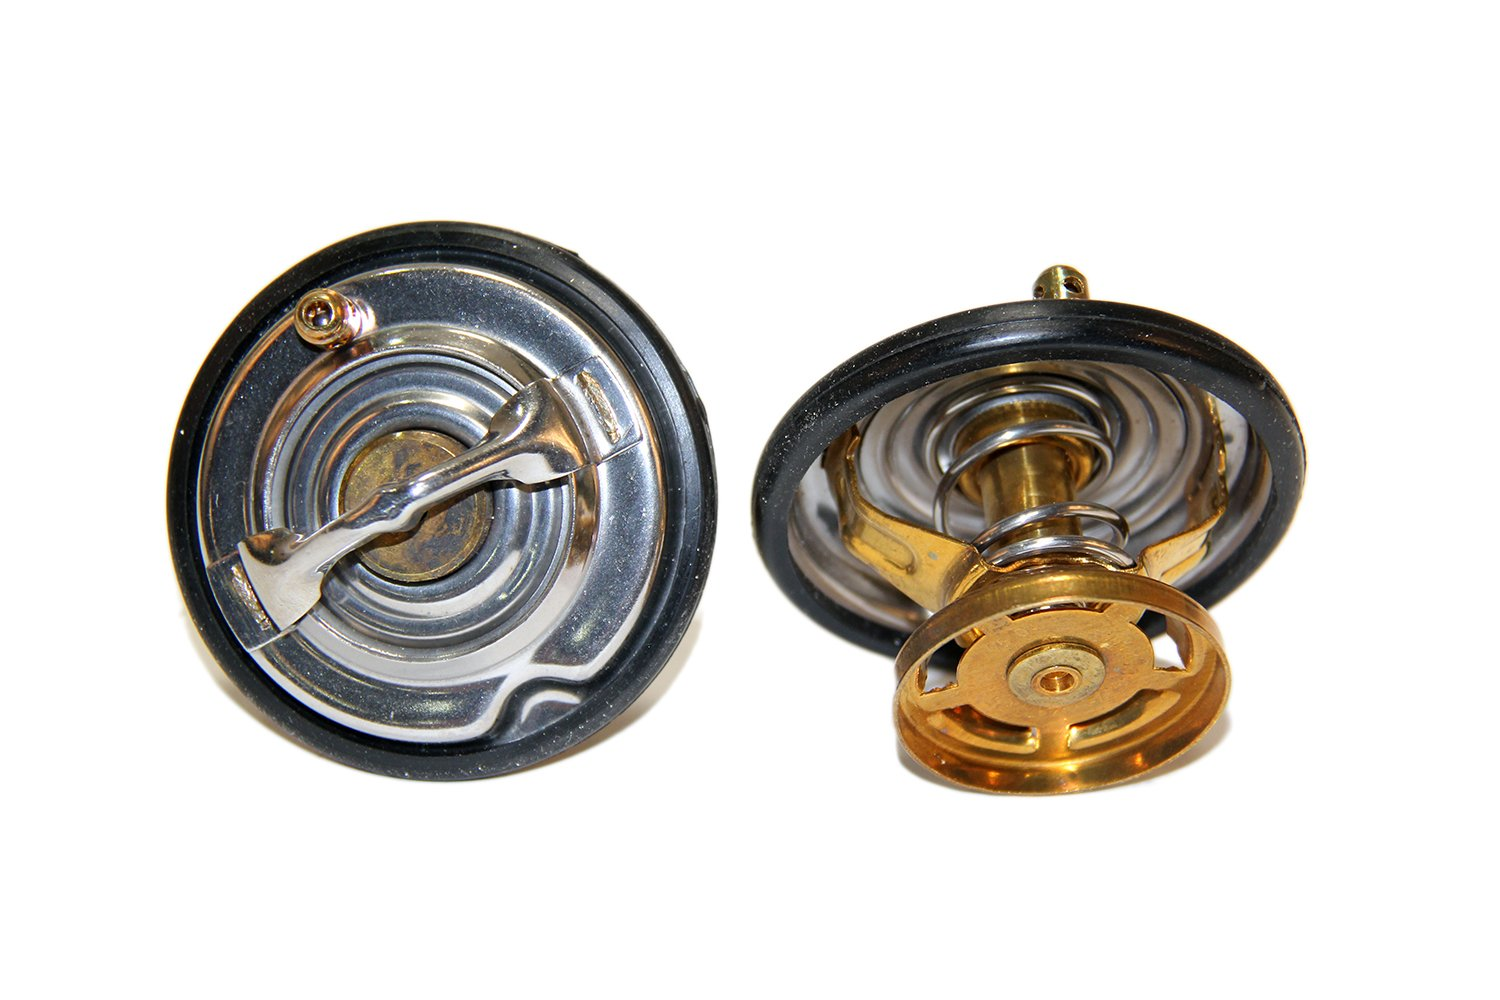 with Seal, Mercedes models 3622 MTC 3622//602-200-00-15 Thermostat 602-200-00-15